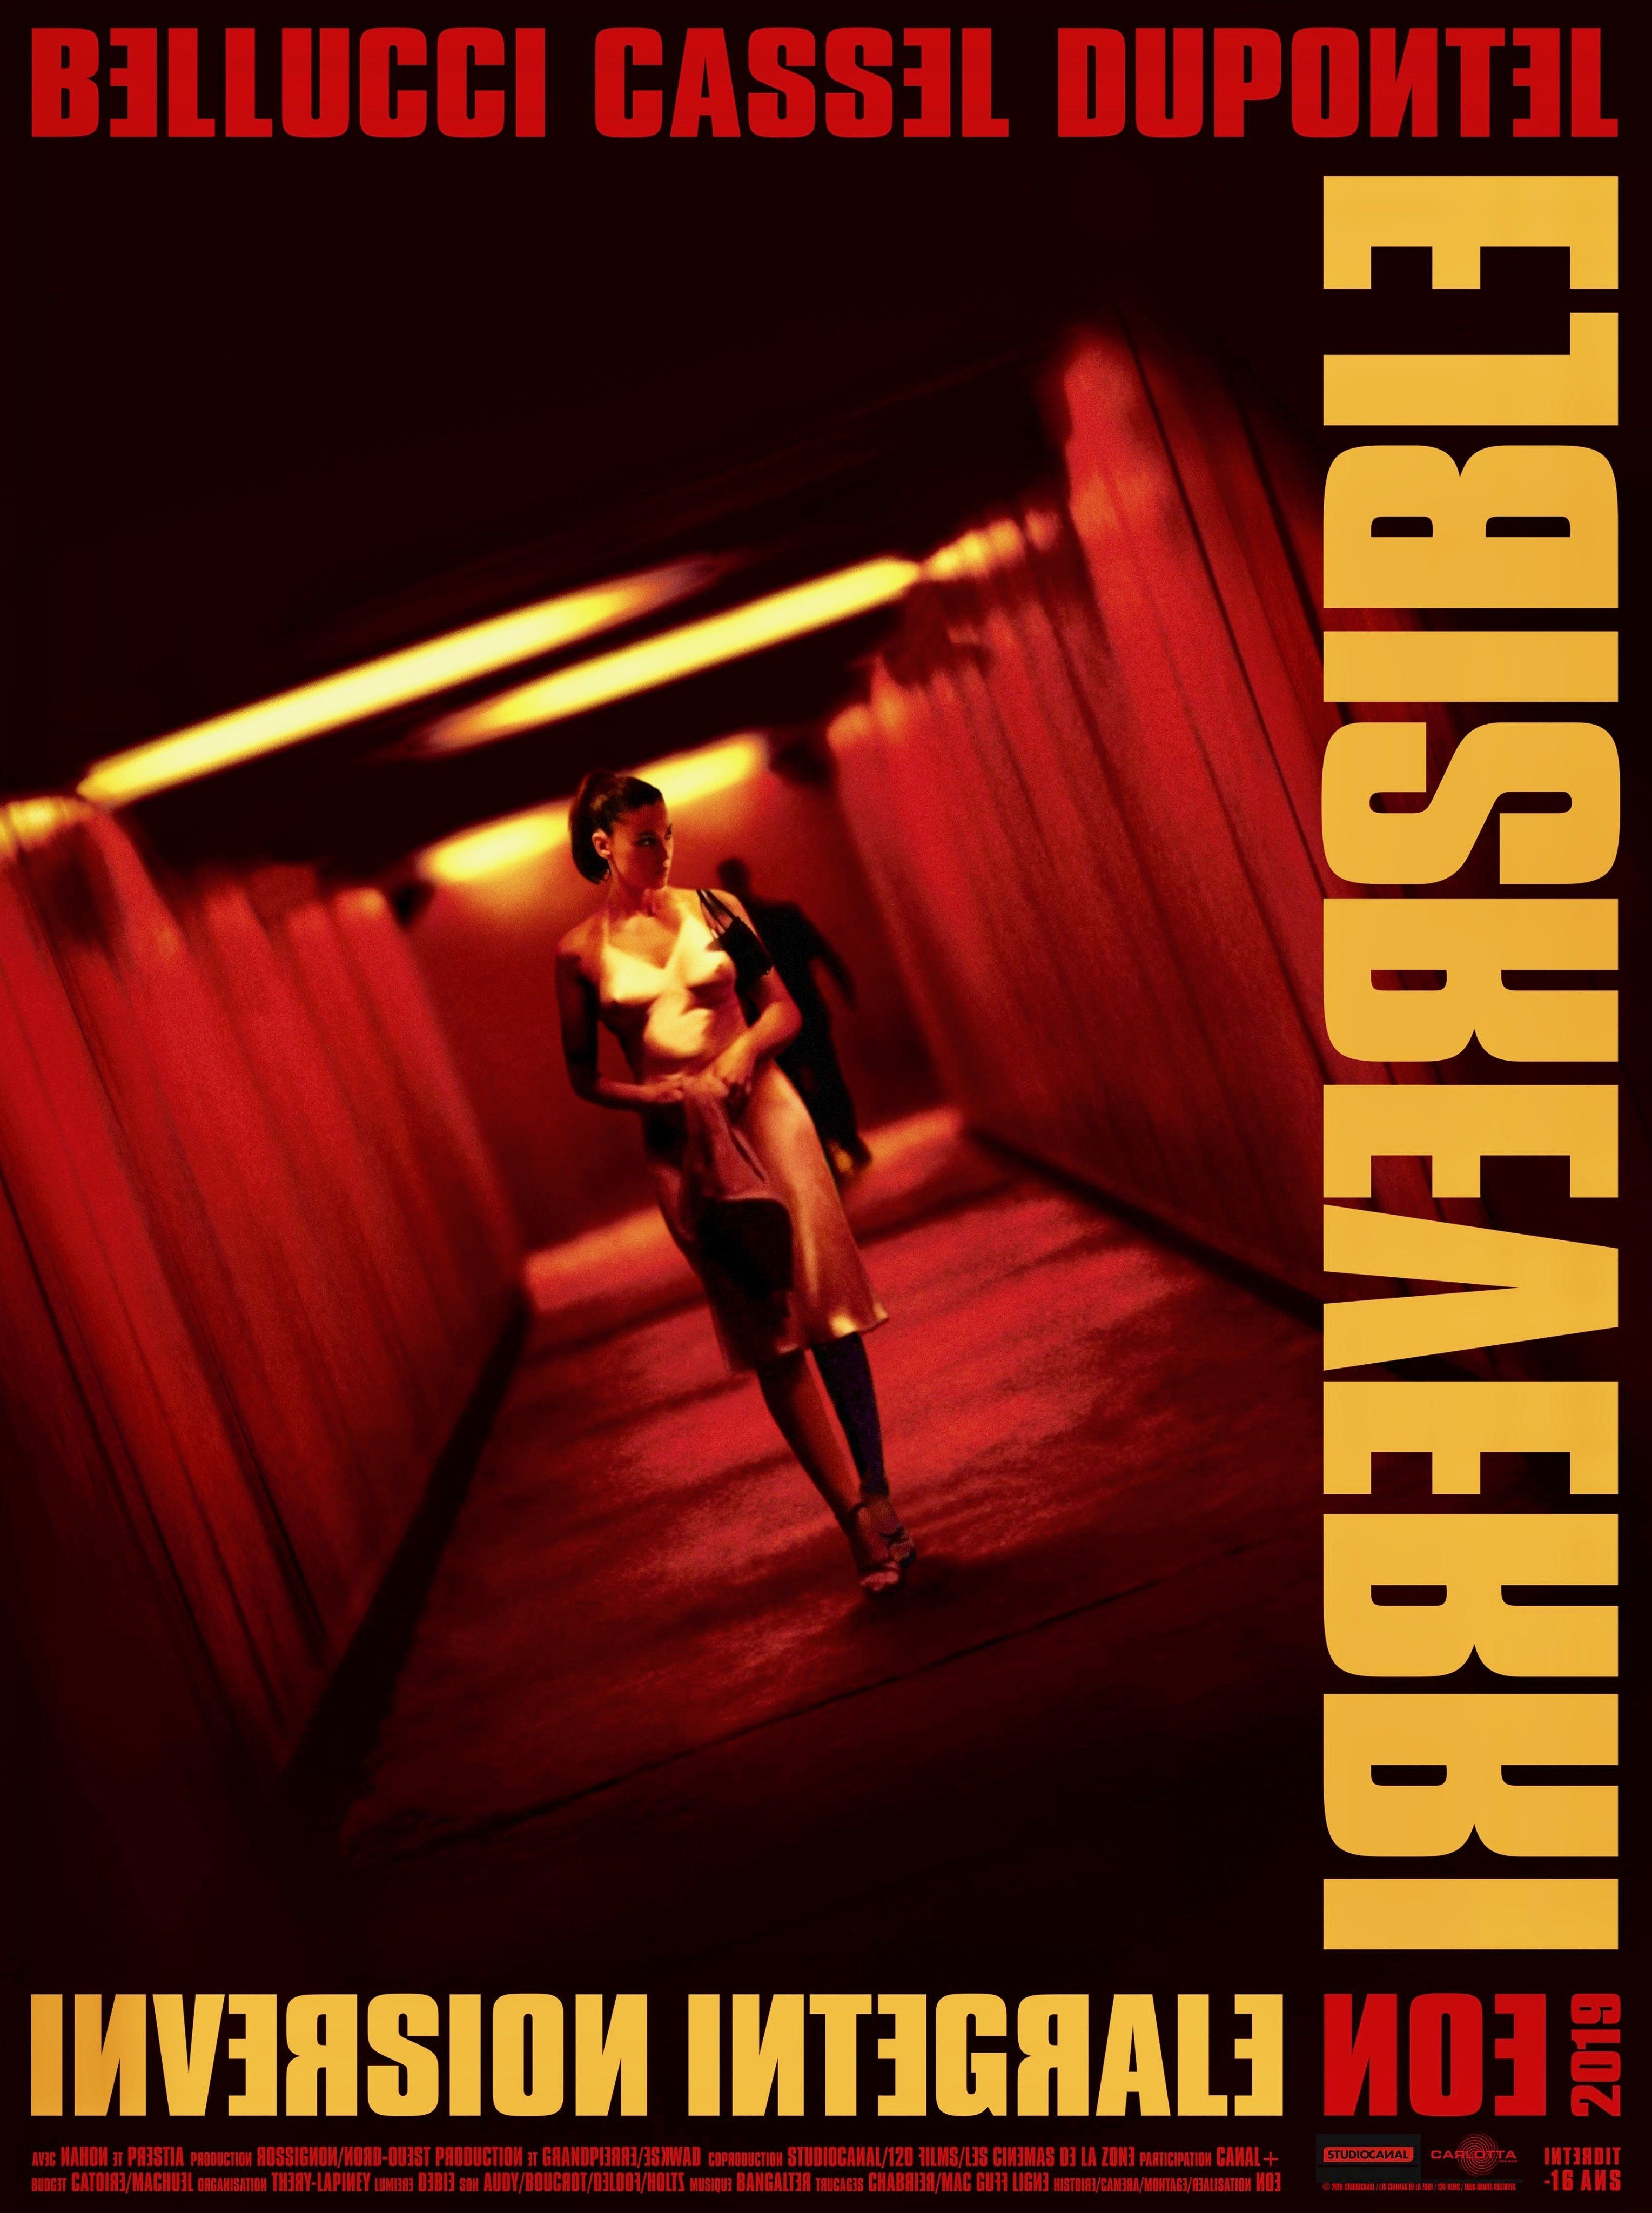 Irreversible 2002 3058 4096 Re Release Poster Best Movie Posters Pop Posters Film Inspiration